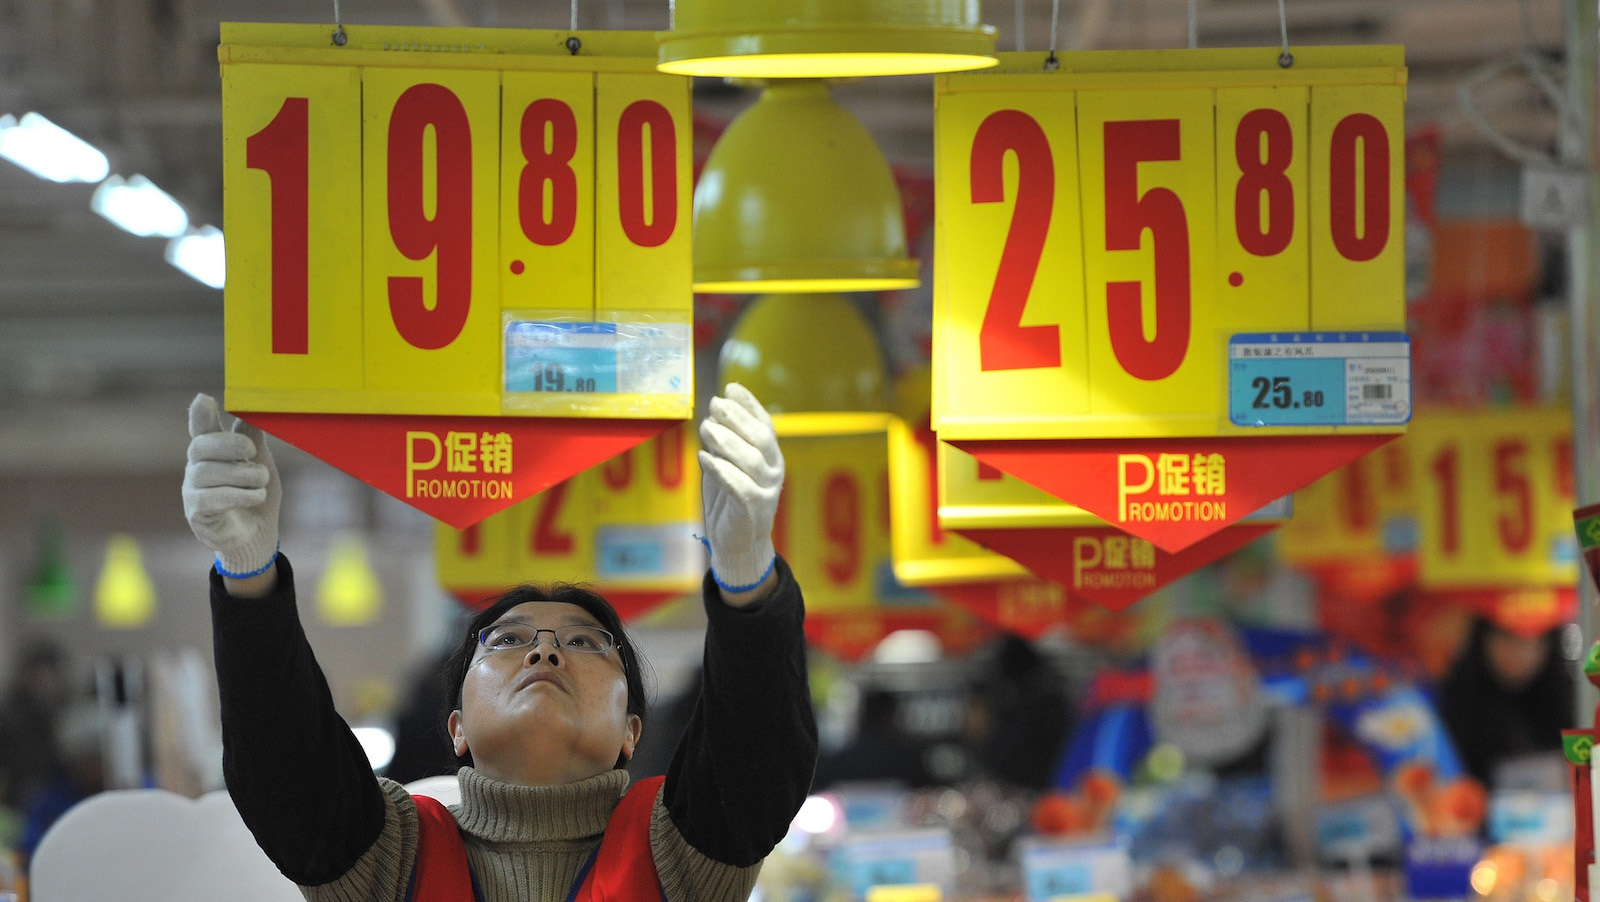 An employee adjusts a price tag at a supermarket in Hefei, Anhui province, January 9, 2015. China's annual consumer inflation was 2 percent in 2014, well below the government's target of 3.5 percent and the number hovered at a near five-year low of 1.5 percent in December, signaling persistent weakness in the economy but giving policymakers more room to ease policy to support growth. REUTERS/Stringer (CHINA - Tags: BUSINESS FOOD SOCIETY) CHINA OUT. NO COMMERCIAL OR EDITORIAL SALES IN CHINA - RTR4KNS6